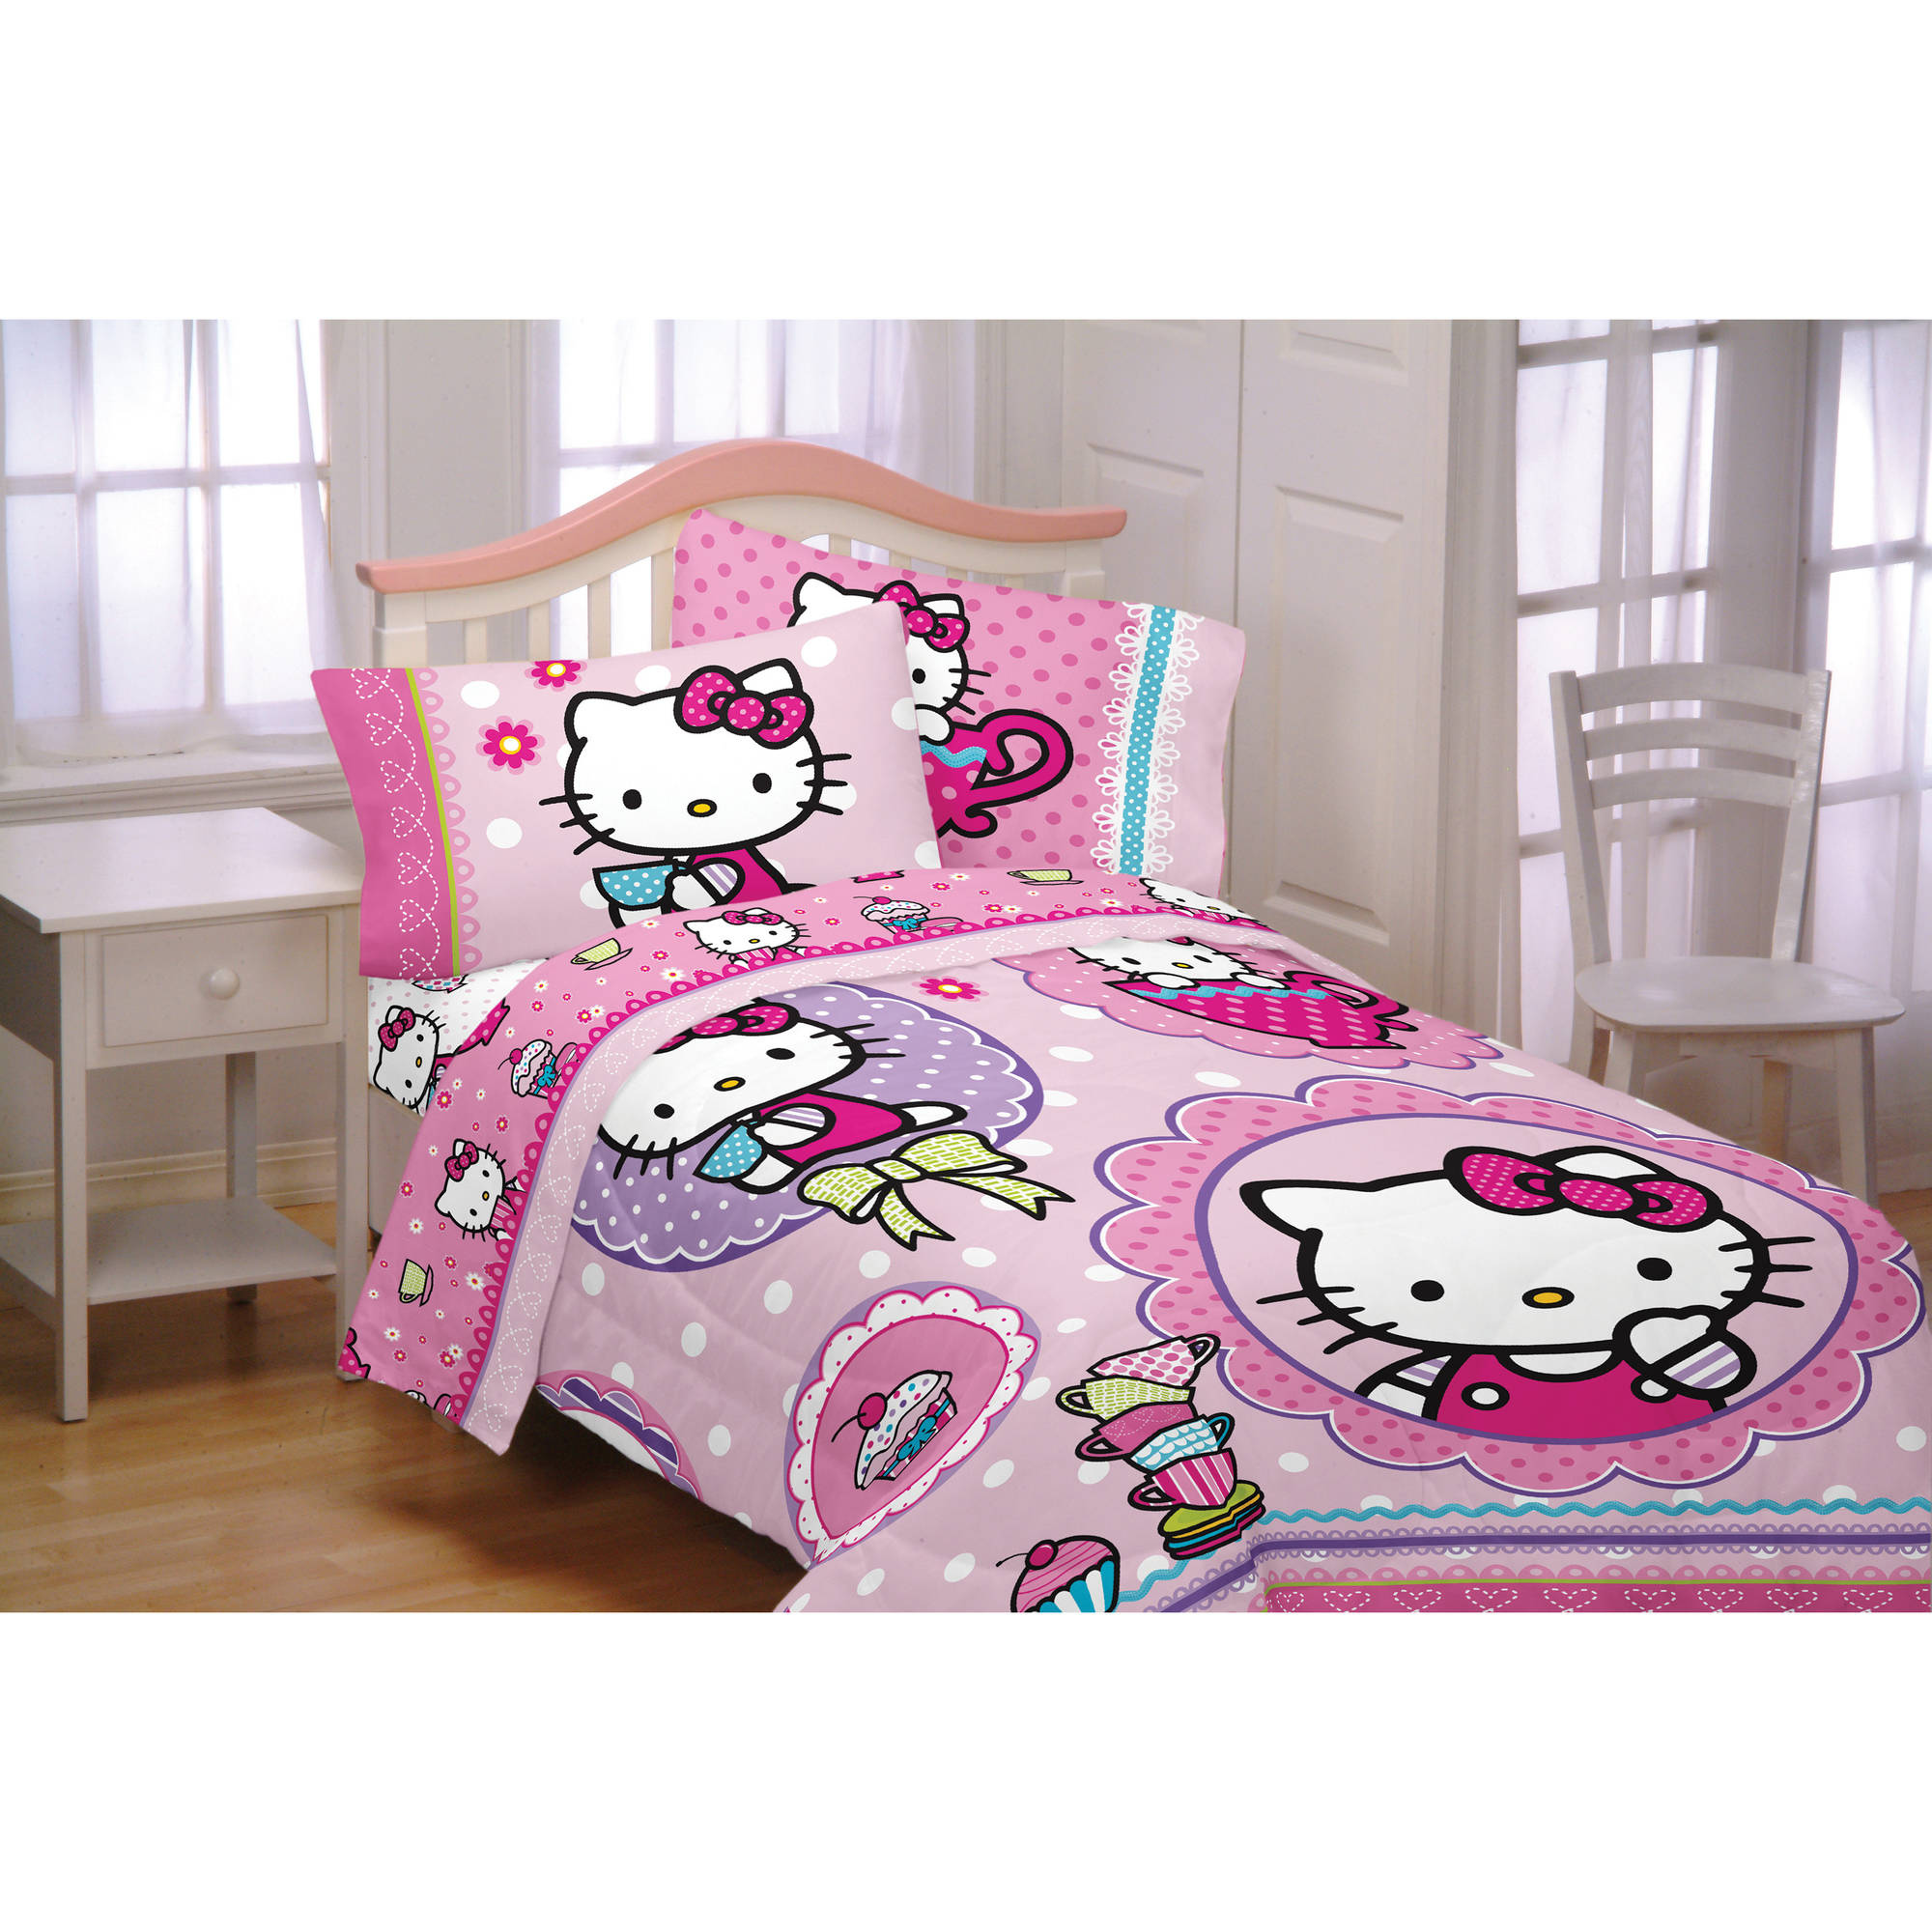 Hello Kitty Reversible Twin Bed in a Bag Bedding Set